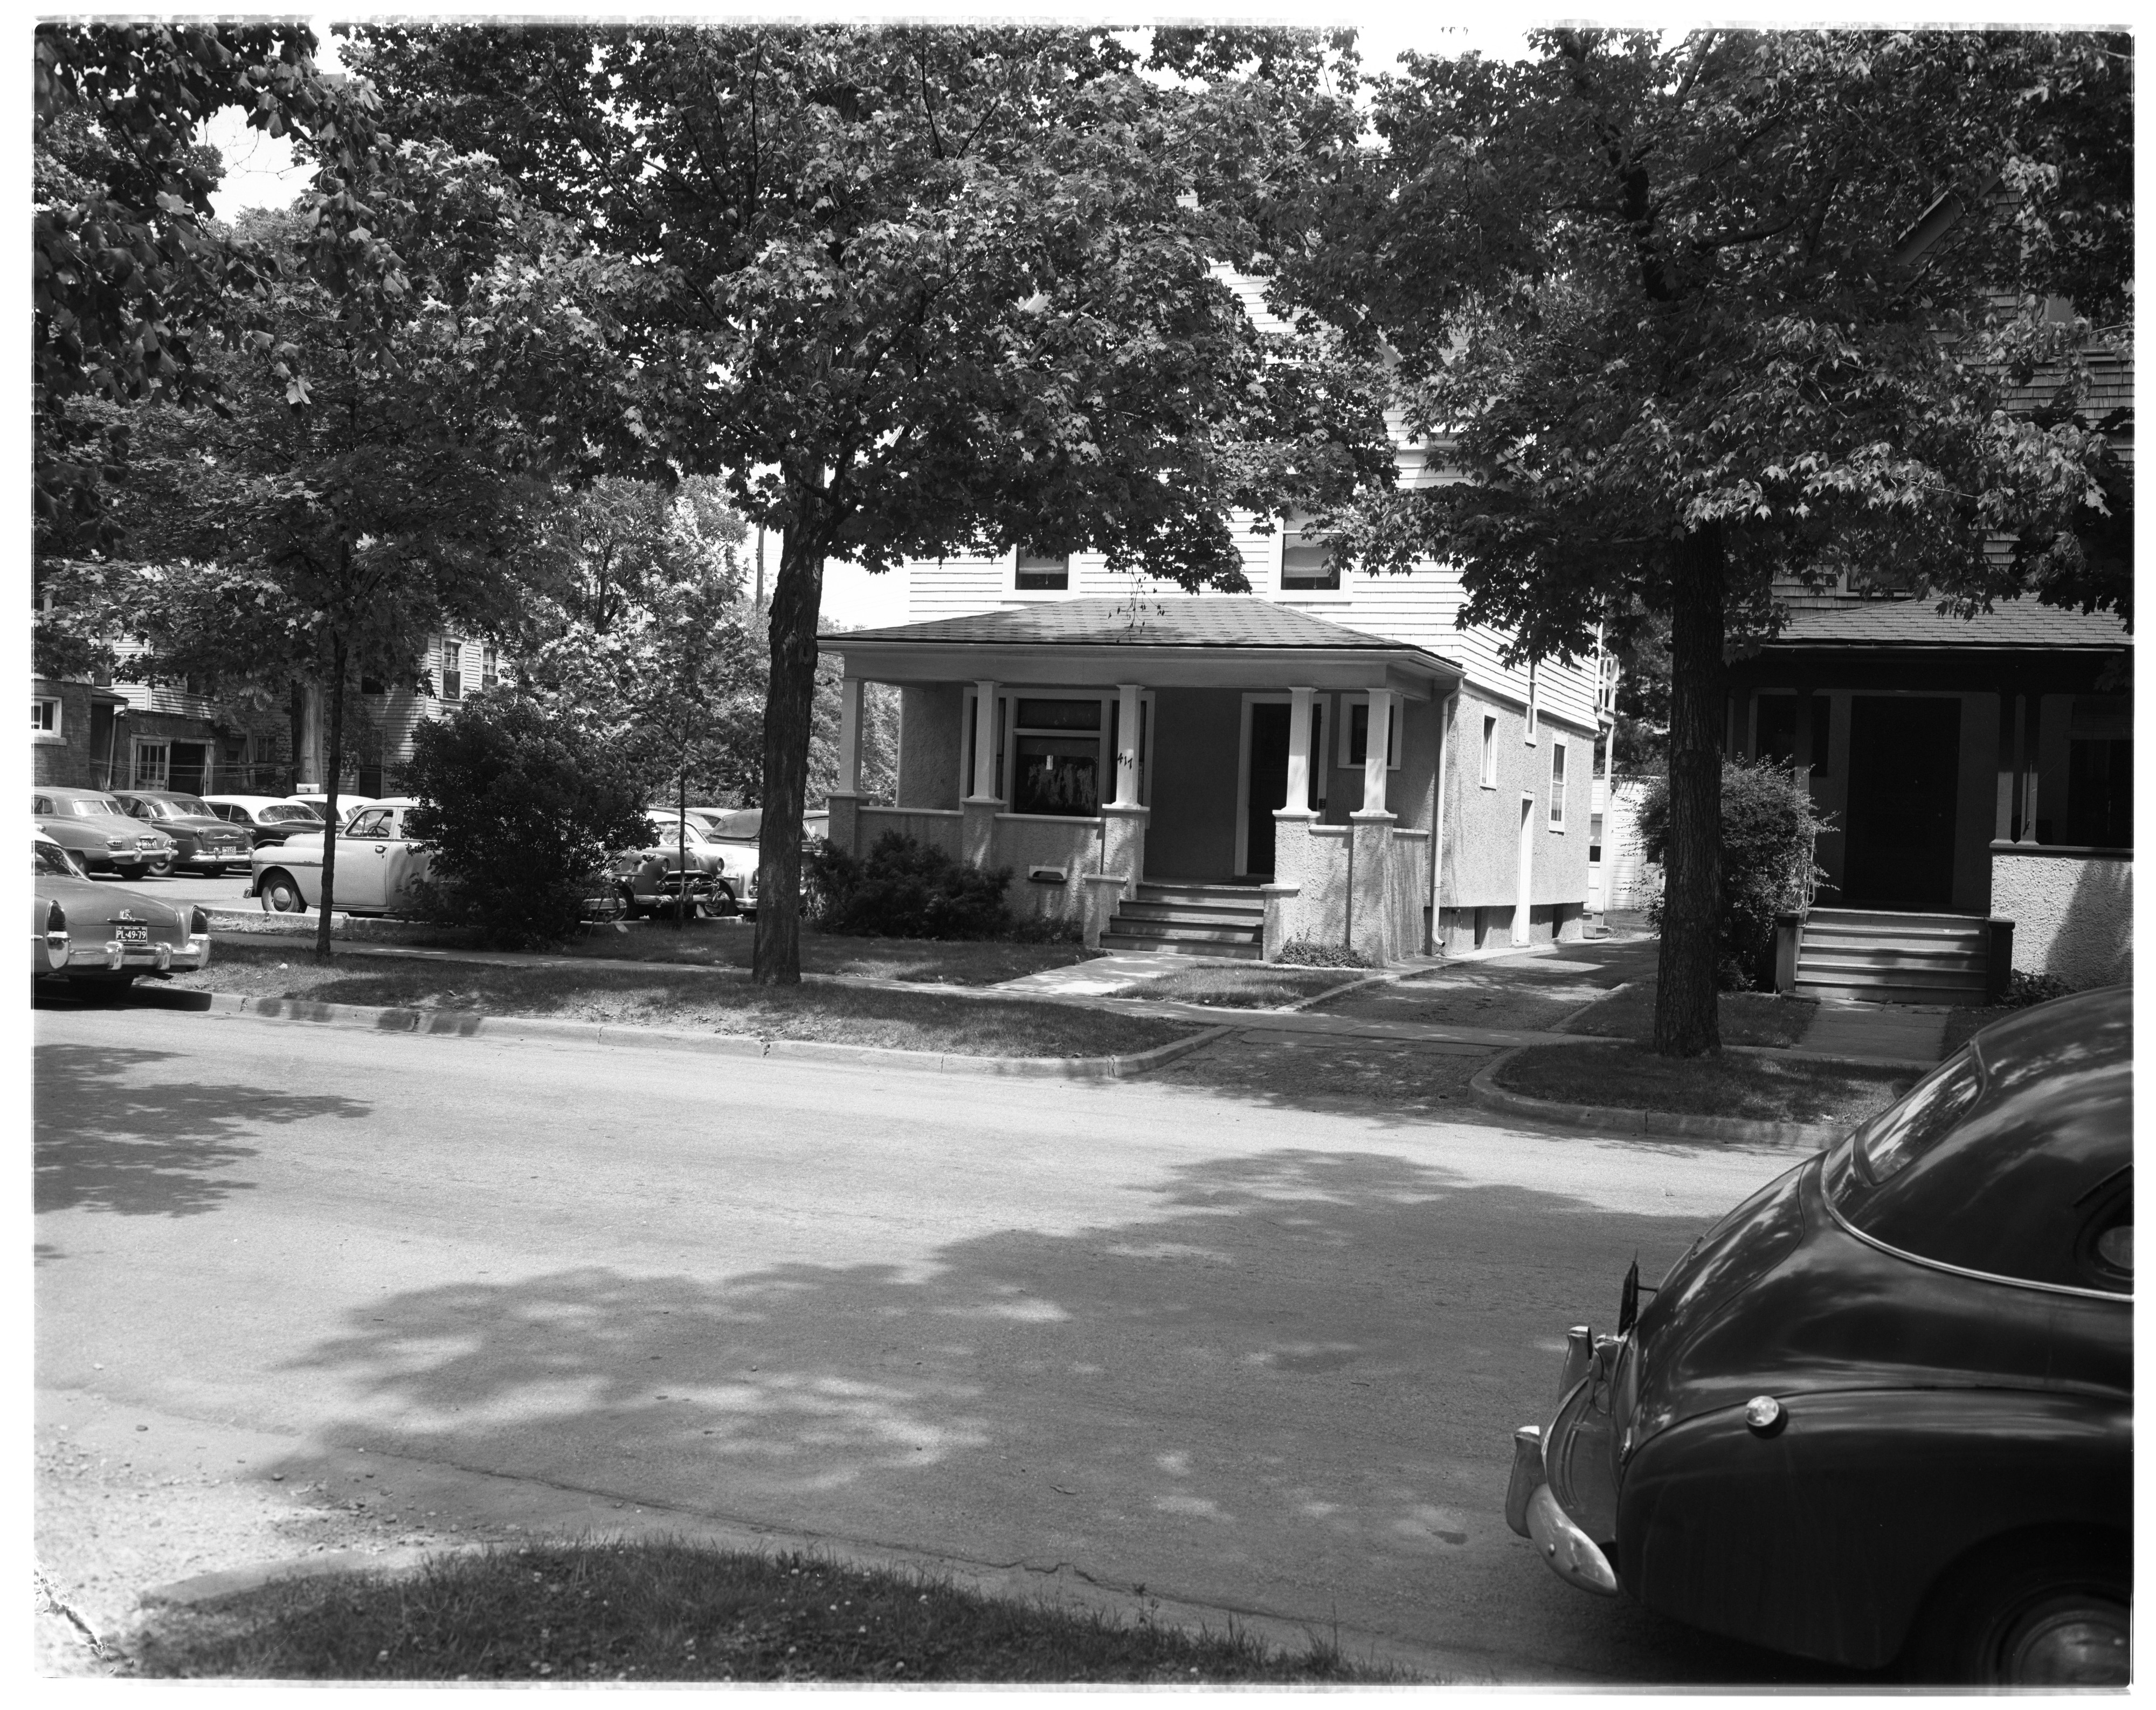 House at 417 Thompson St. on Property Sought by U-M, June 1955 image